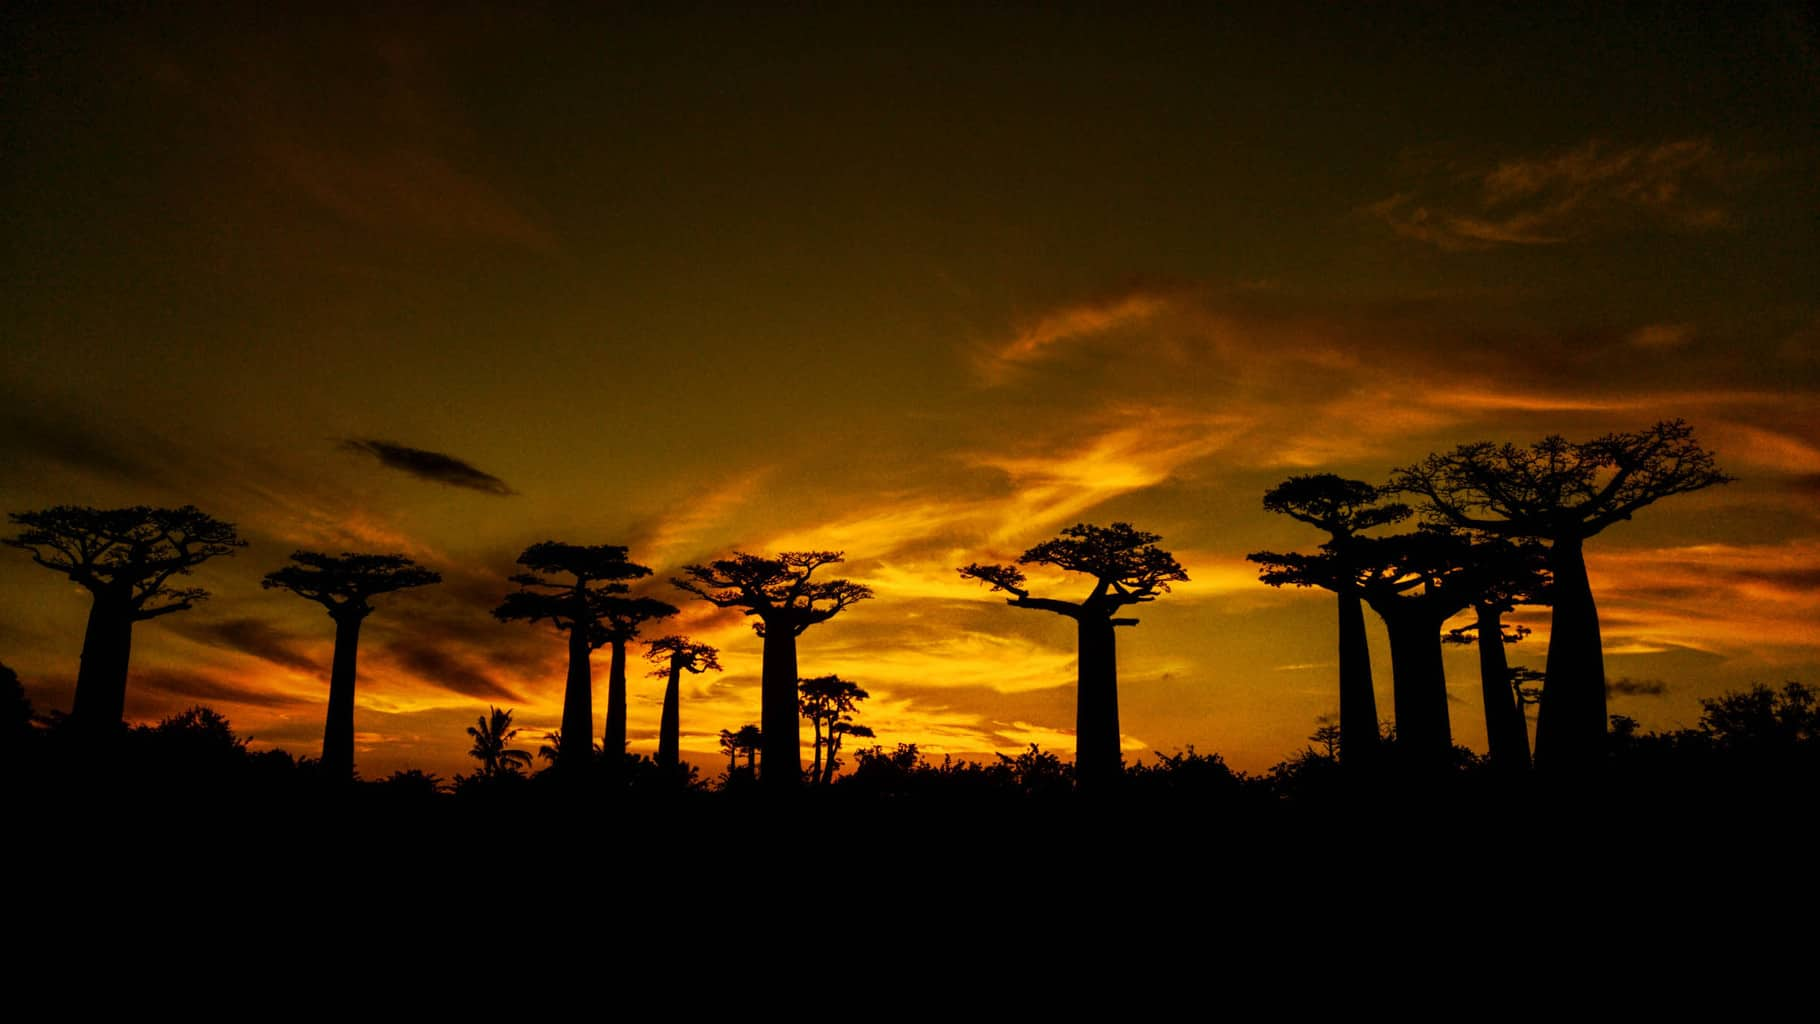 Sunset over the Baobab Trees in Madagascar